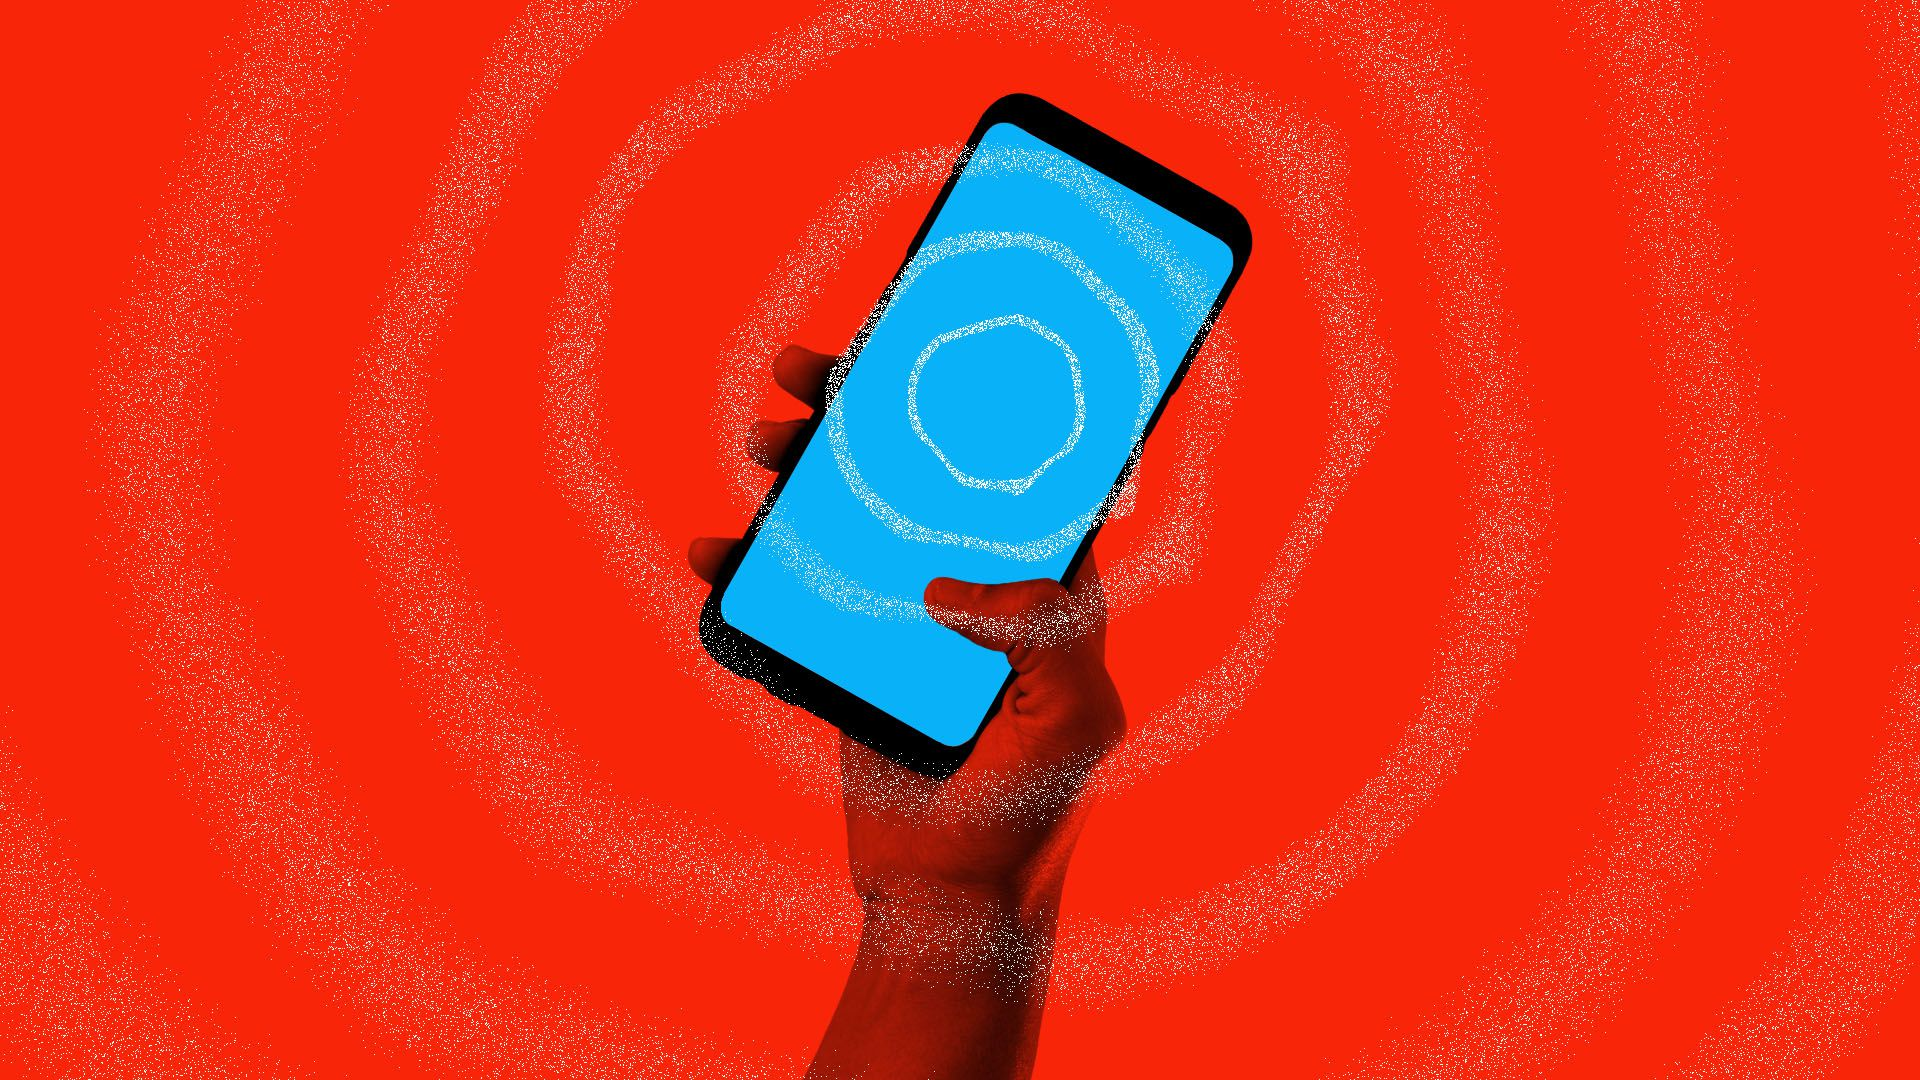 Illustration of a cellphone emanating an earthquake warning